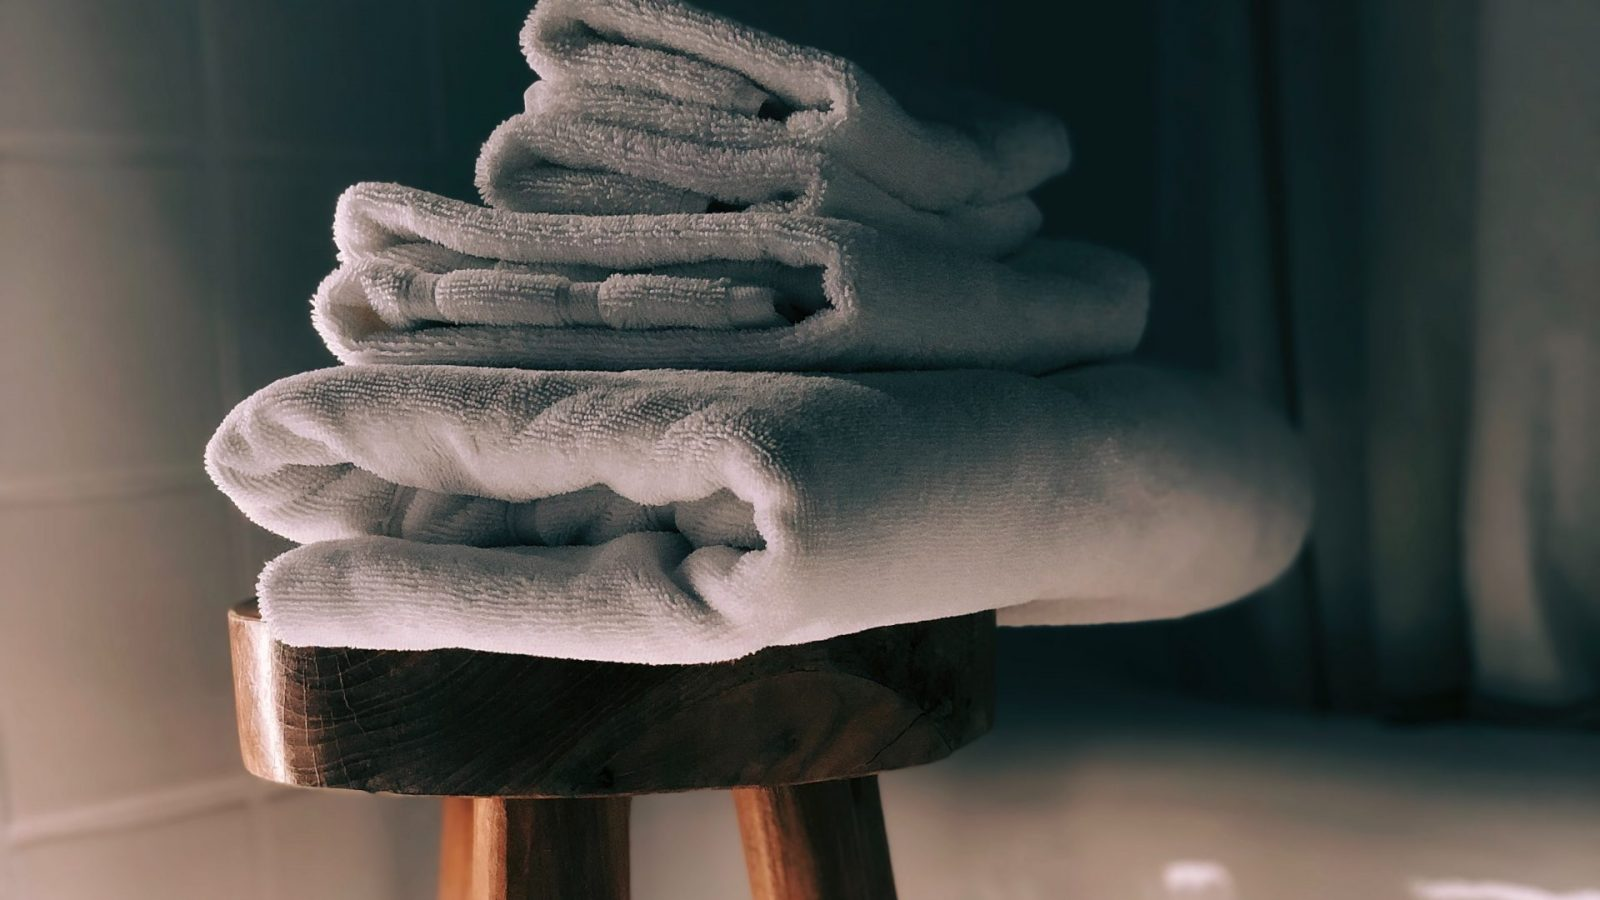 Clean towels on a stool near bathtub